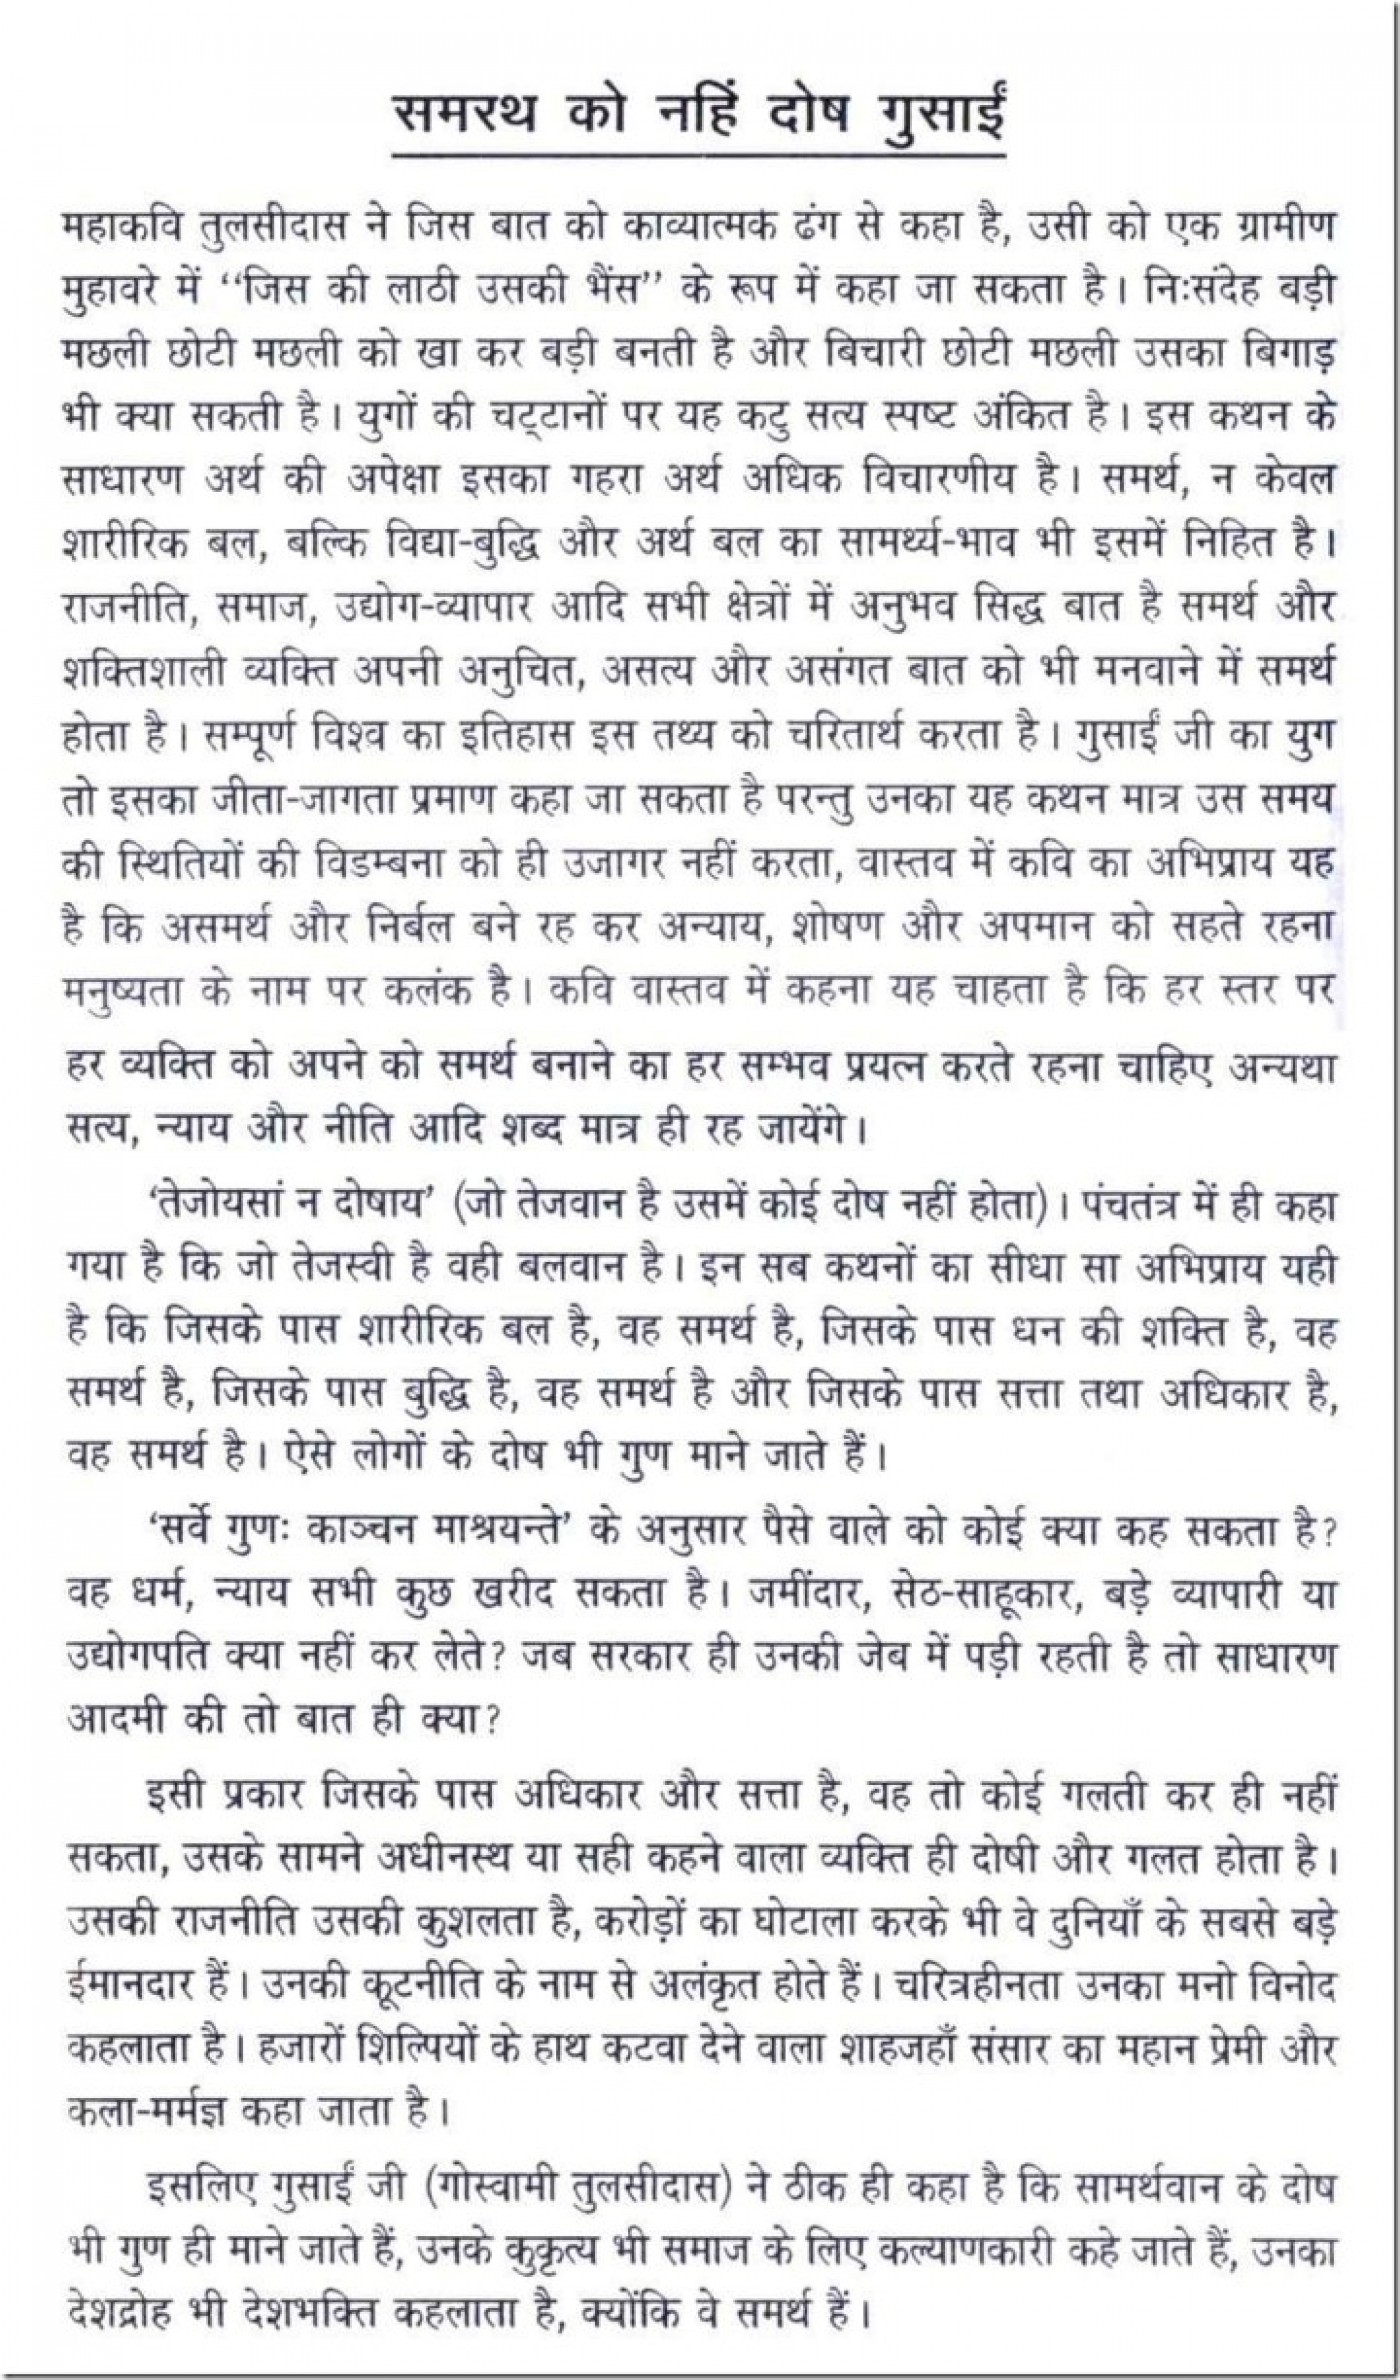 007 Good Habits Essay In Hindi Example Hh0055 Thumbresize7202c1224 Exceptional And Bad Healthy Eating 1400